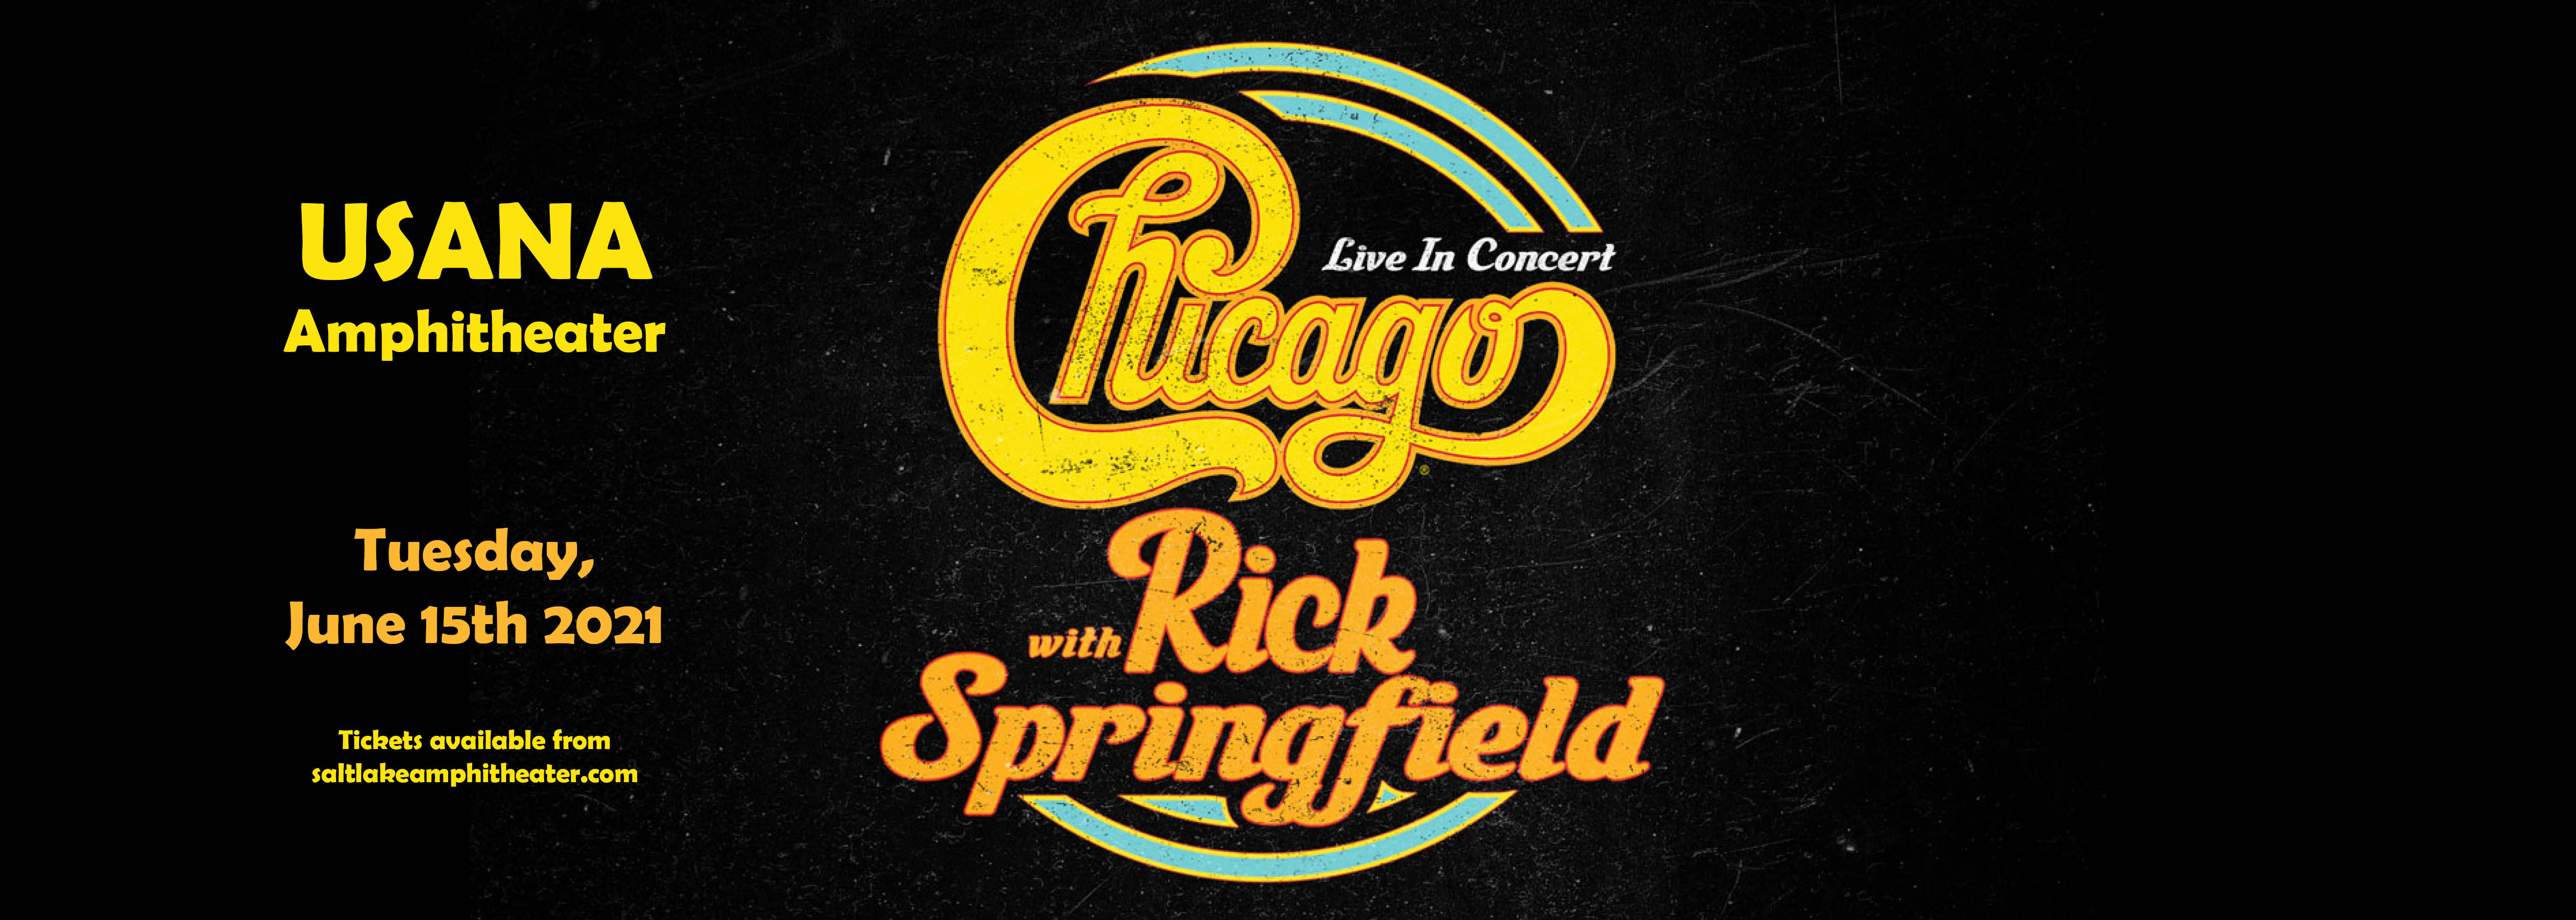 Chicago - The Band & Rick Springfield at USANA Amphitheater